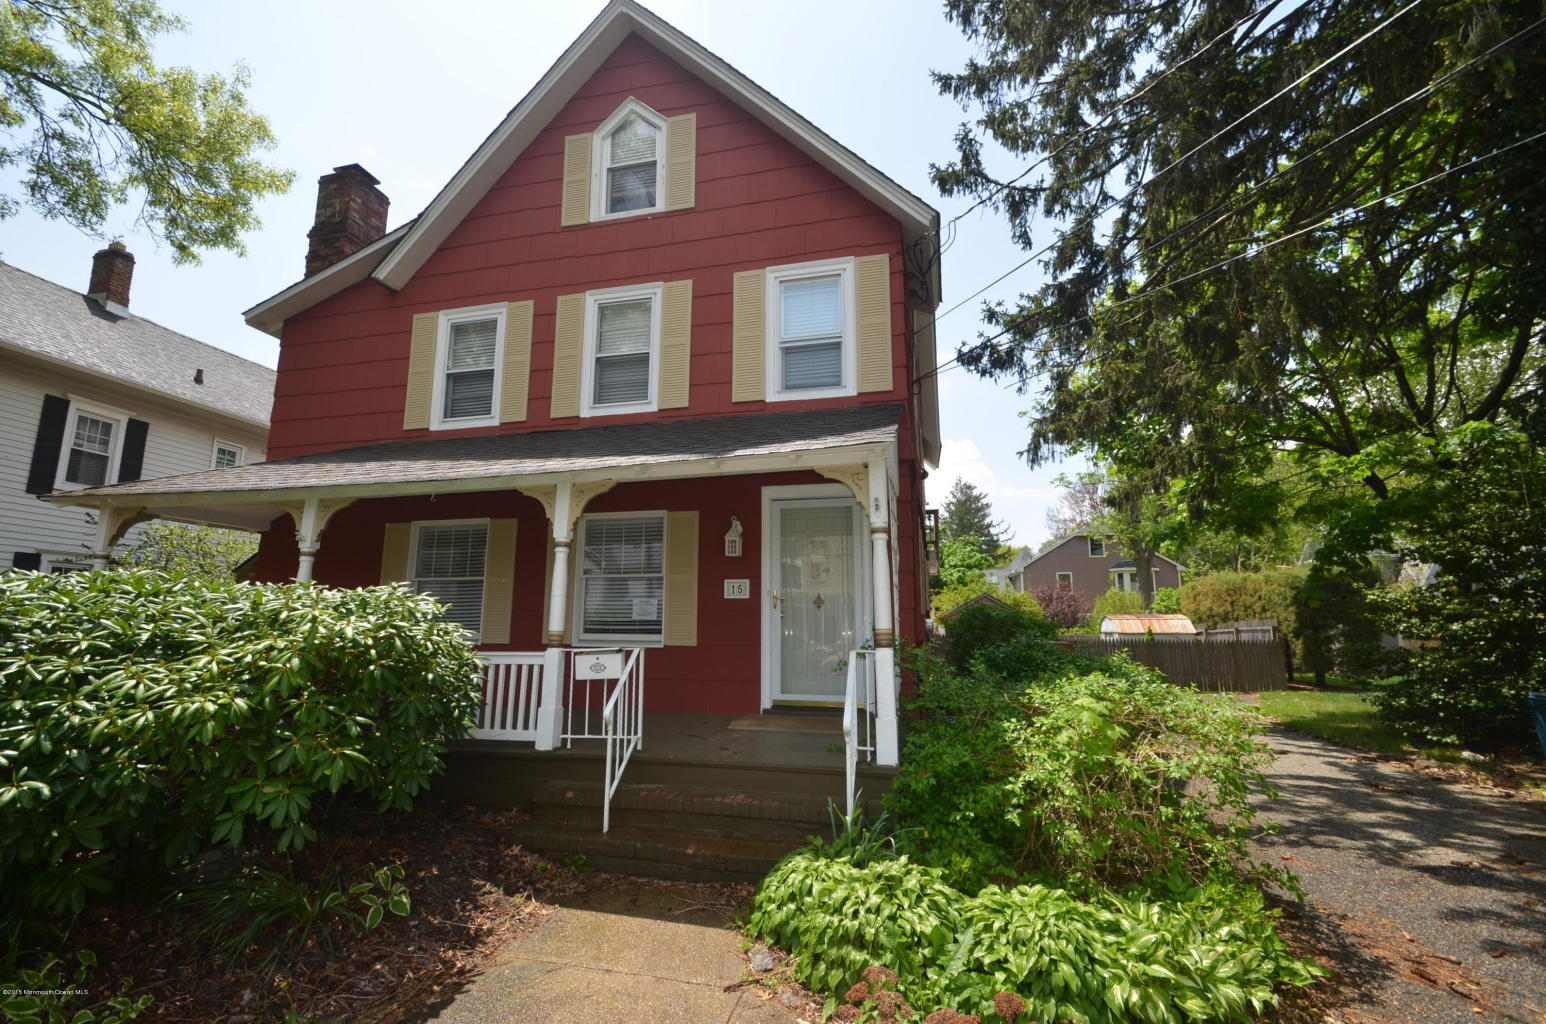 Multi-Family Home for Sale at Endless Possibilities 15 Marcellus Avenue Manasquan, New Jersey 08736 United States